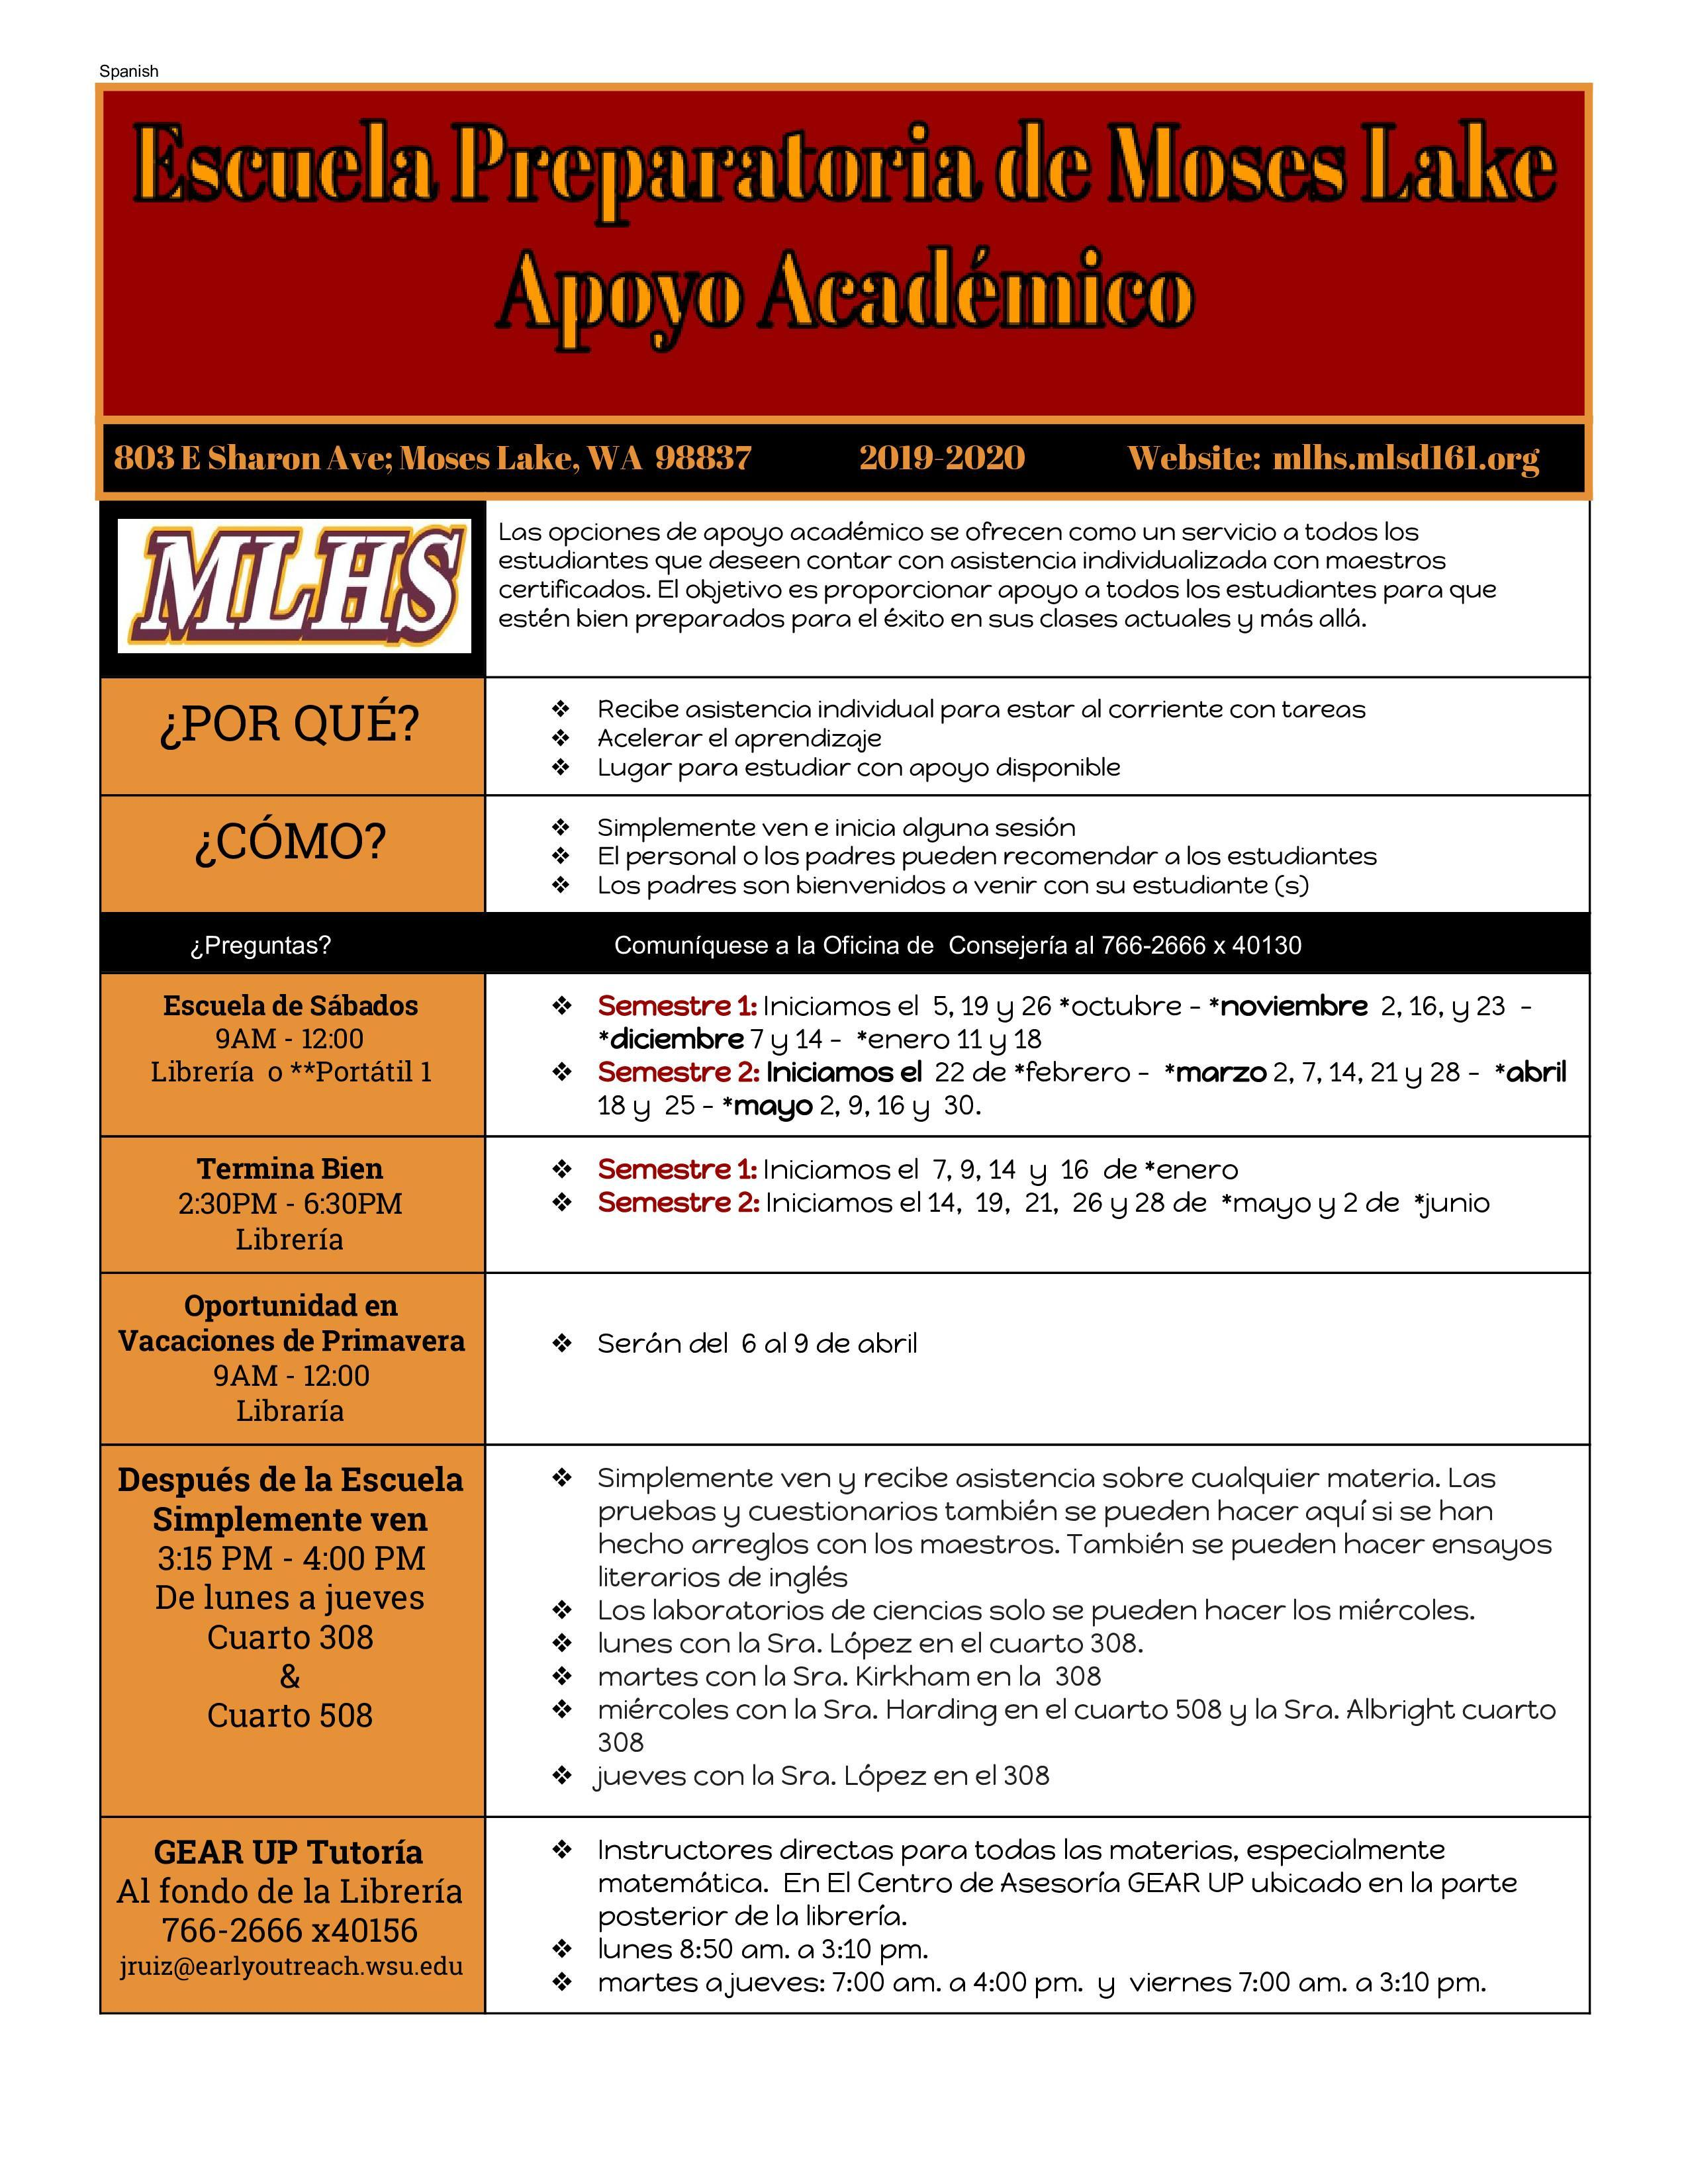 Spanish Version of Academic Support Schedule for the 19/20 School Year at MLHS